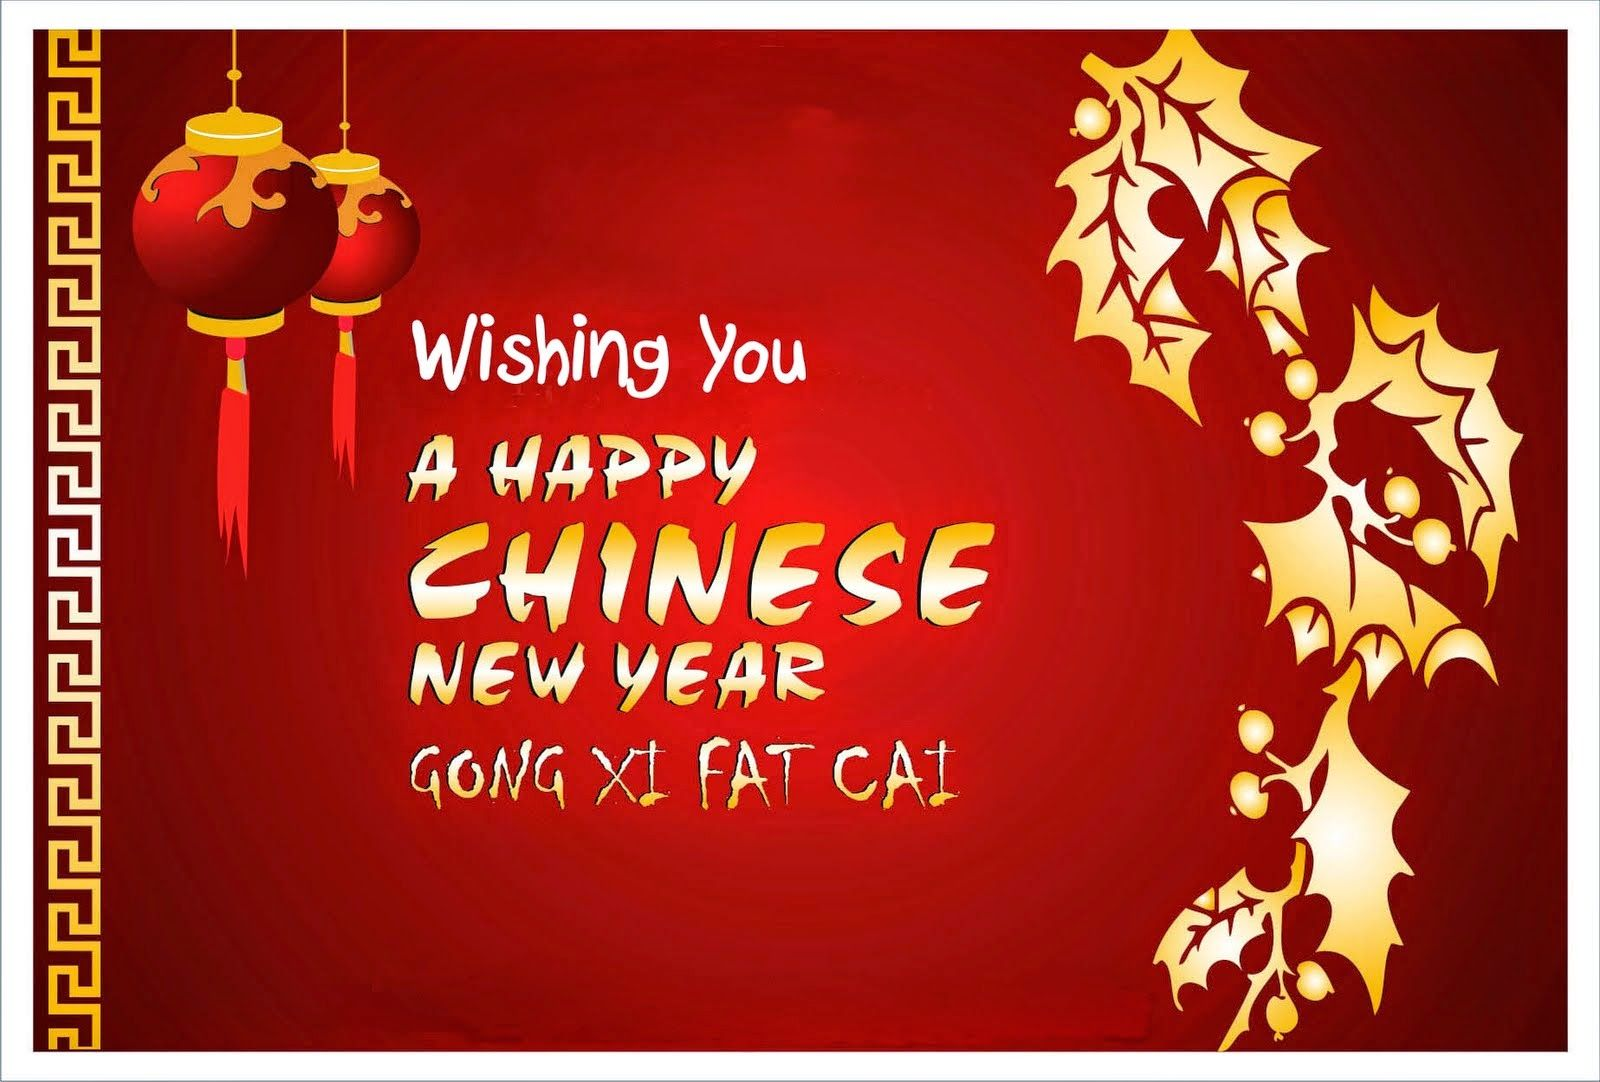 Happy new year 2015 quoteshttphappynewyear2015quotes lunar chinese new year 2014 greetings fireworks wallpapers images kristyandbryce Choice Image